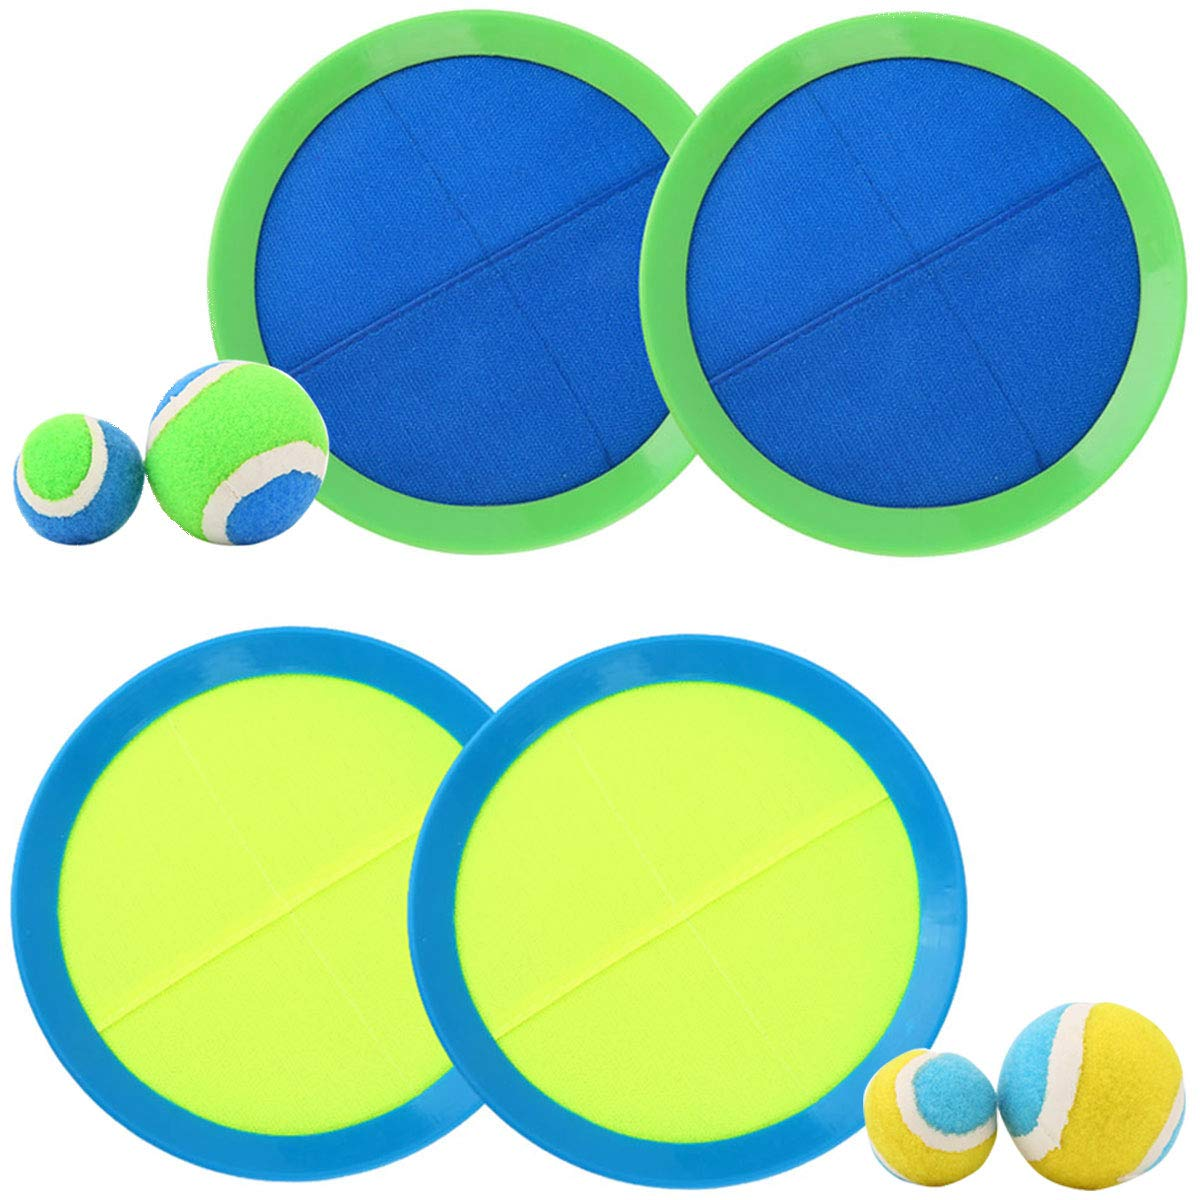 EVERICH TOY Ball and Catch Game-Paddles Toss and Catch Ball Set-Outdoor Sport Balls Game Toys for Kids(2 Smal Balls,2Big Balls,4 Paddles,1 Storage) by EVERICH TOY